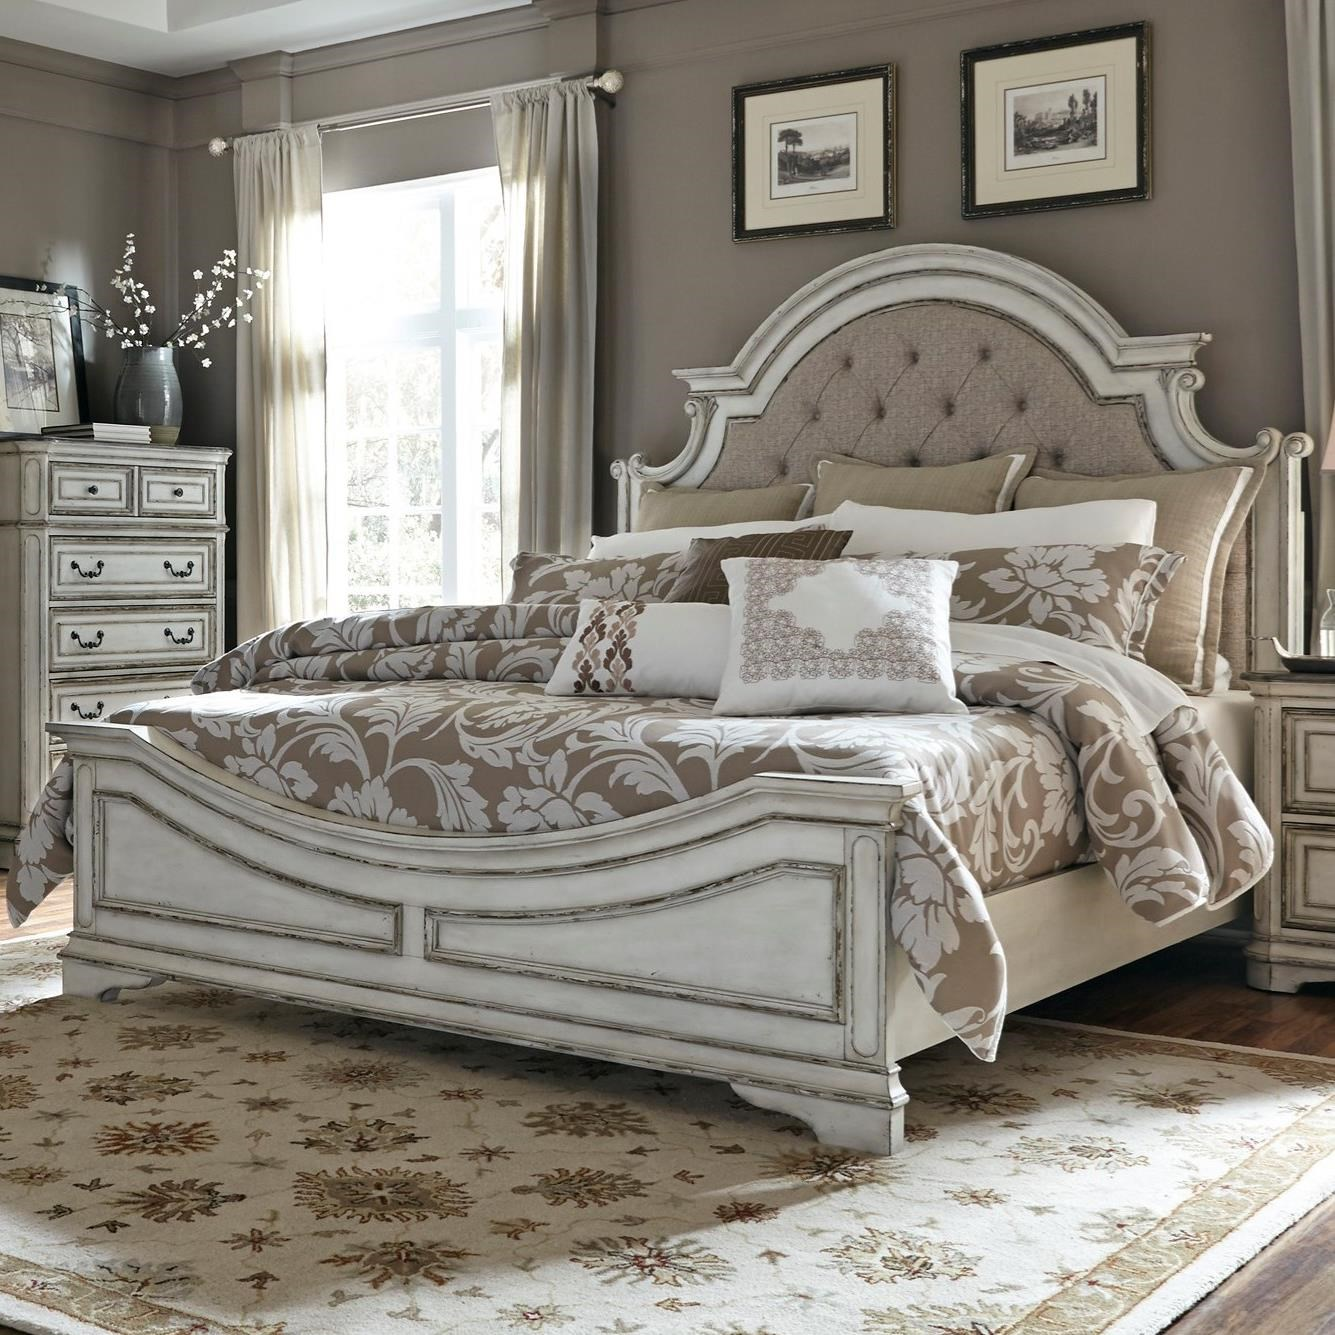 Liberty Furniture Magnolia Manor 244 Br Kub King Upholstered Bed Great American Home Store